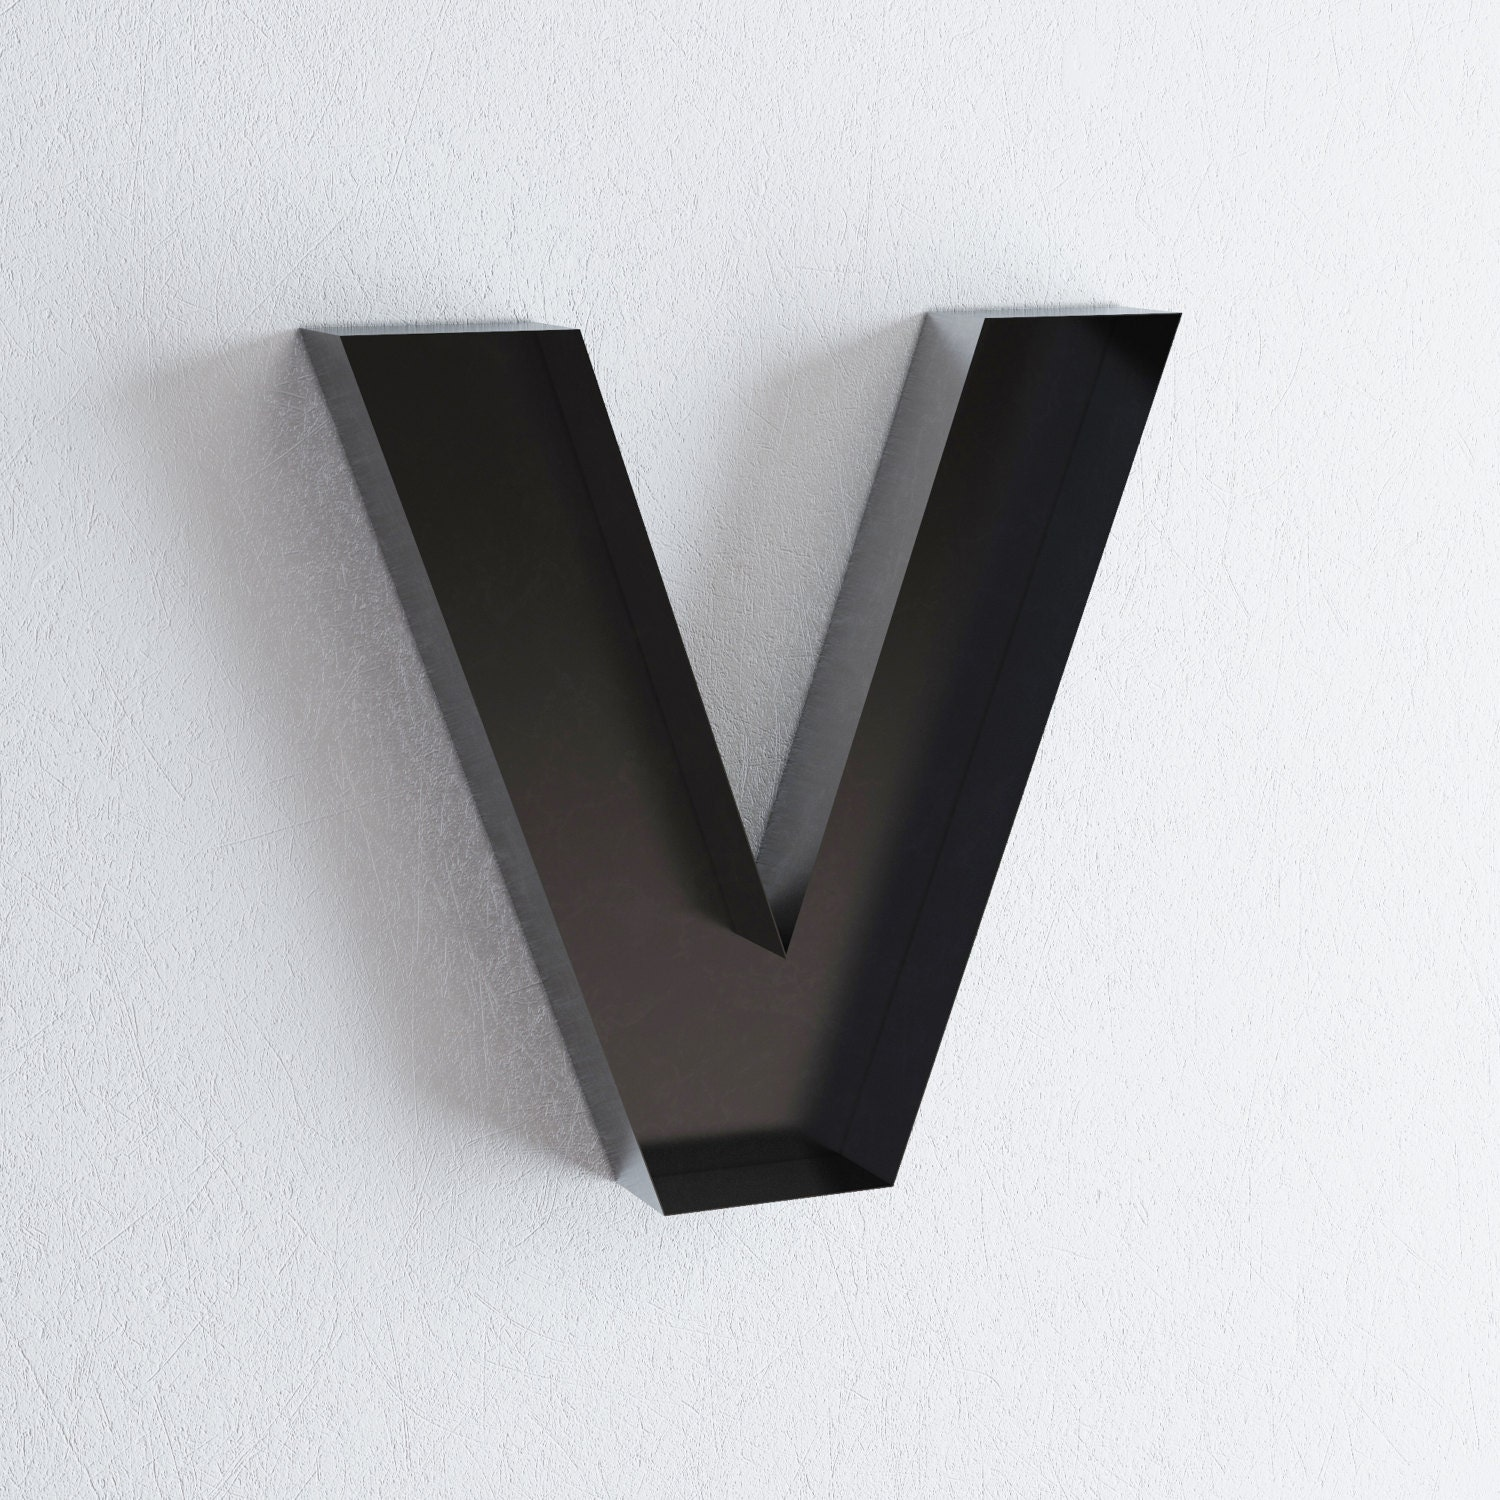 Metal v sign letter wall decor metal wall letters by metalya Wall letters decor